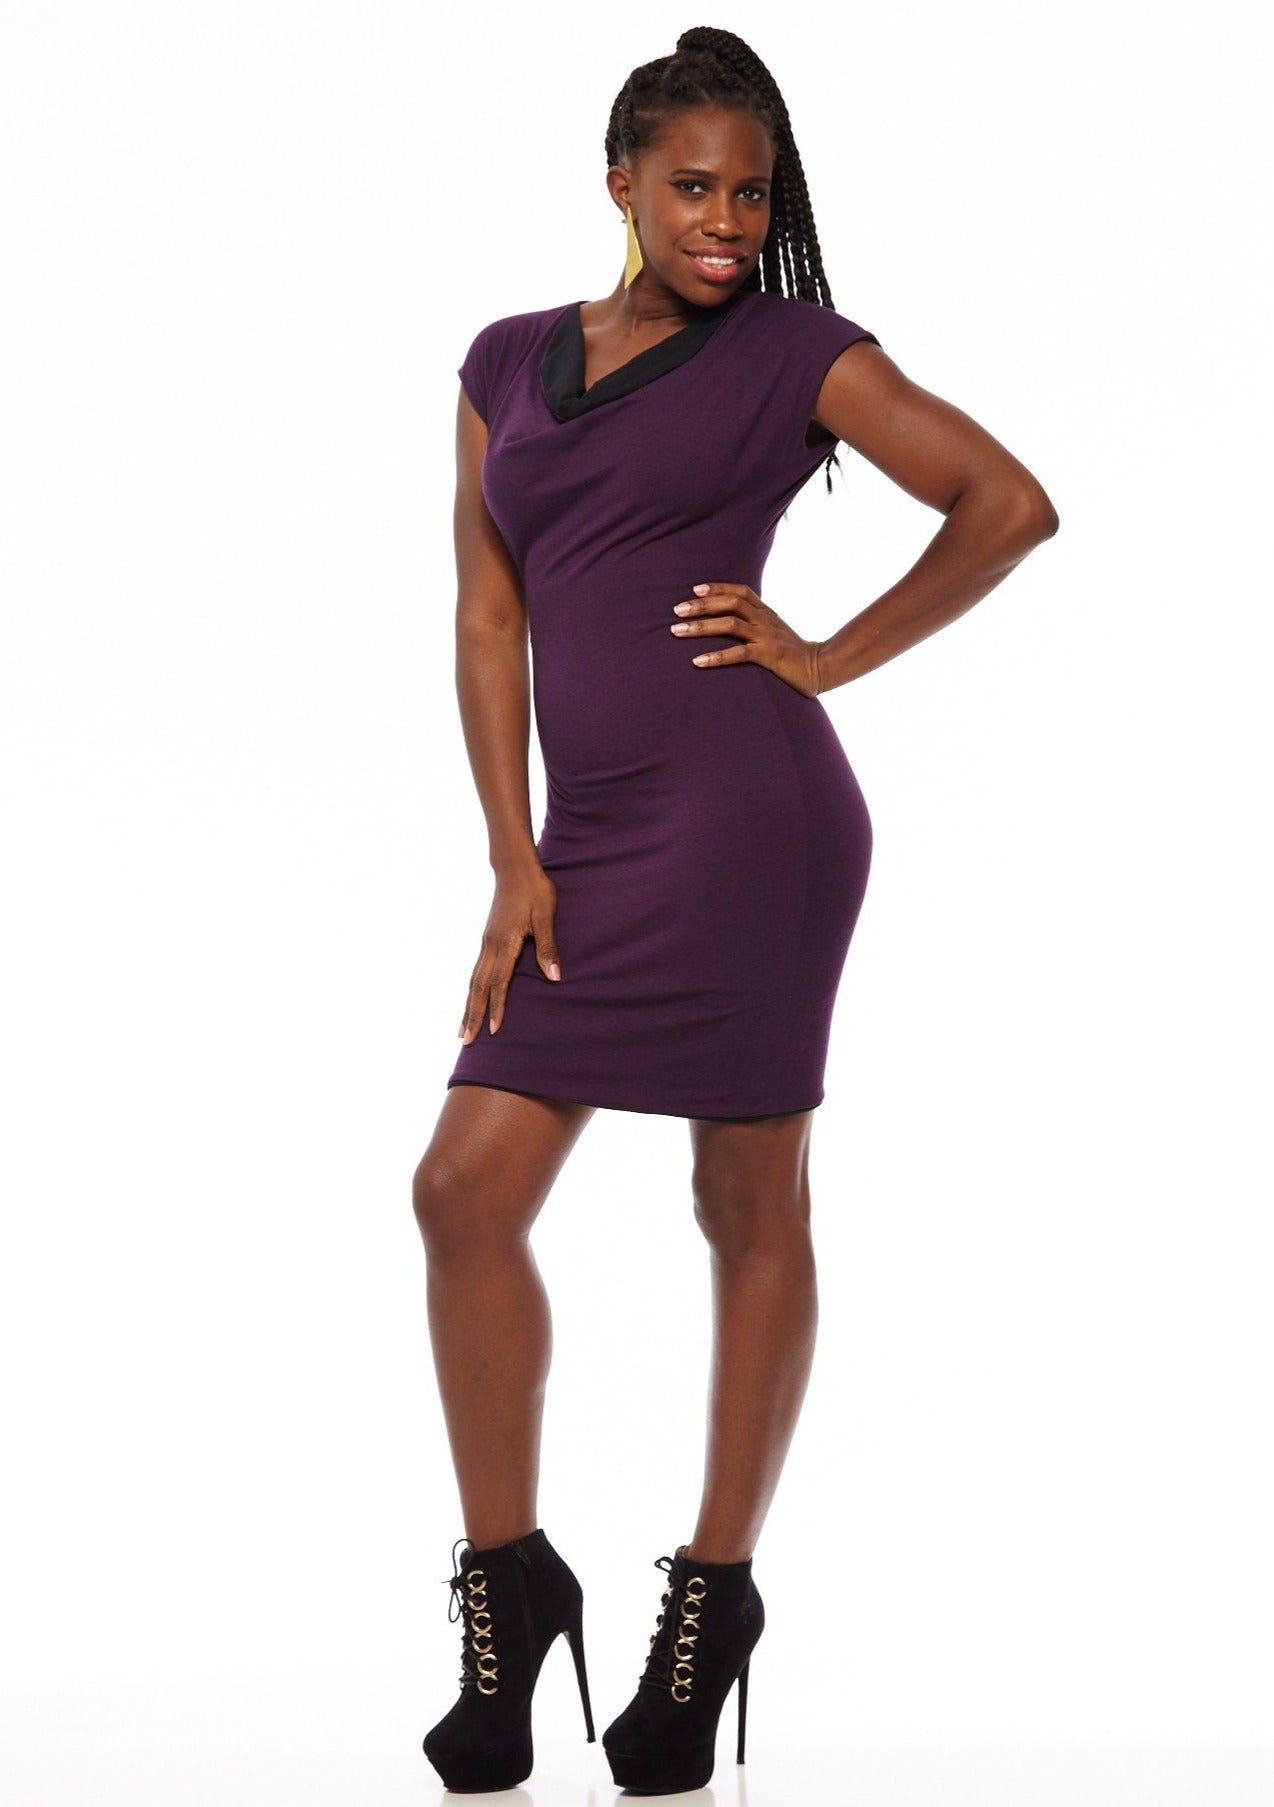 Cap Sleeved Original 4-Way Reversible Dress